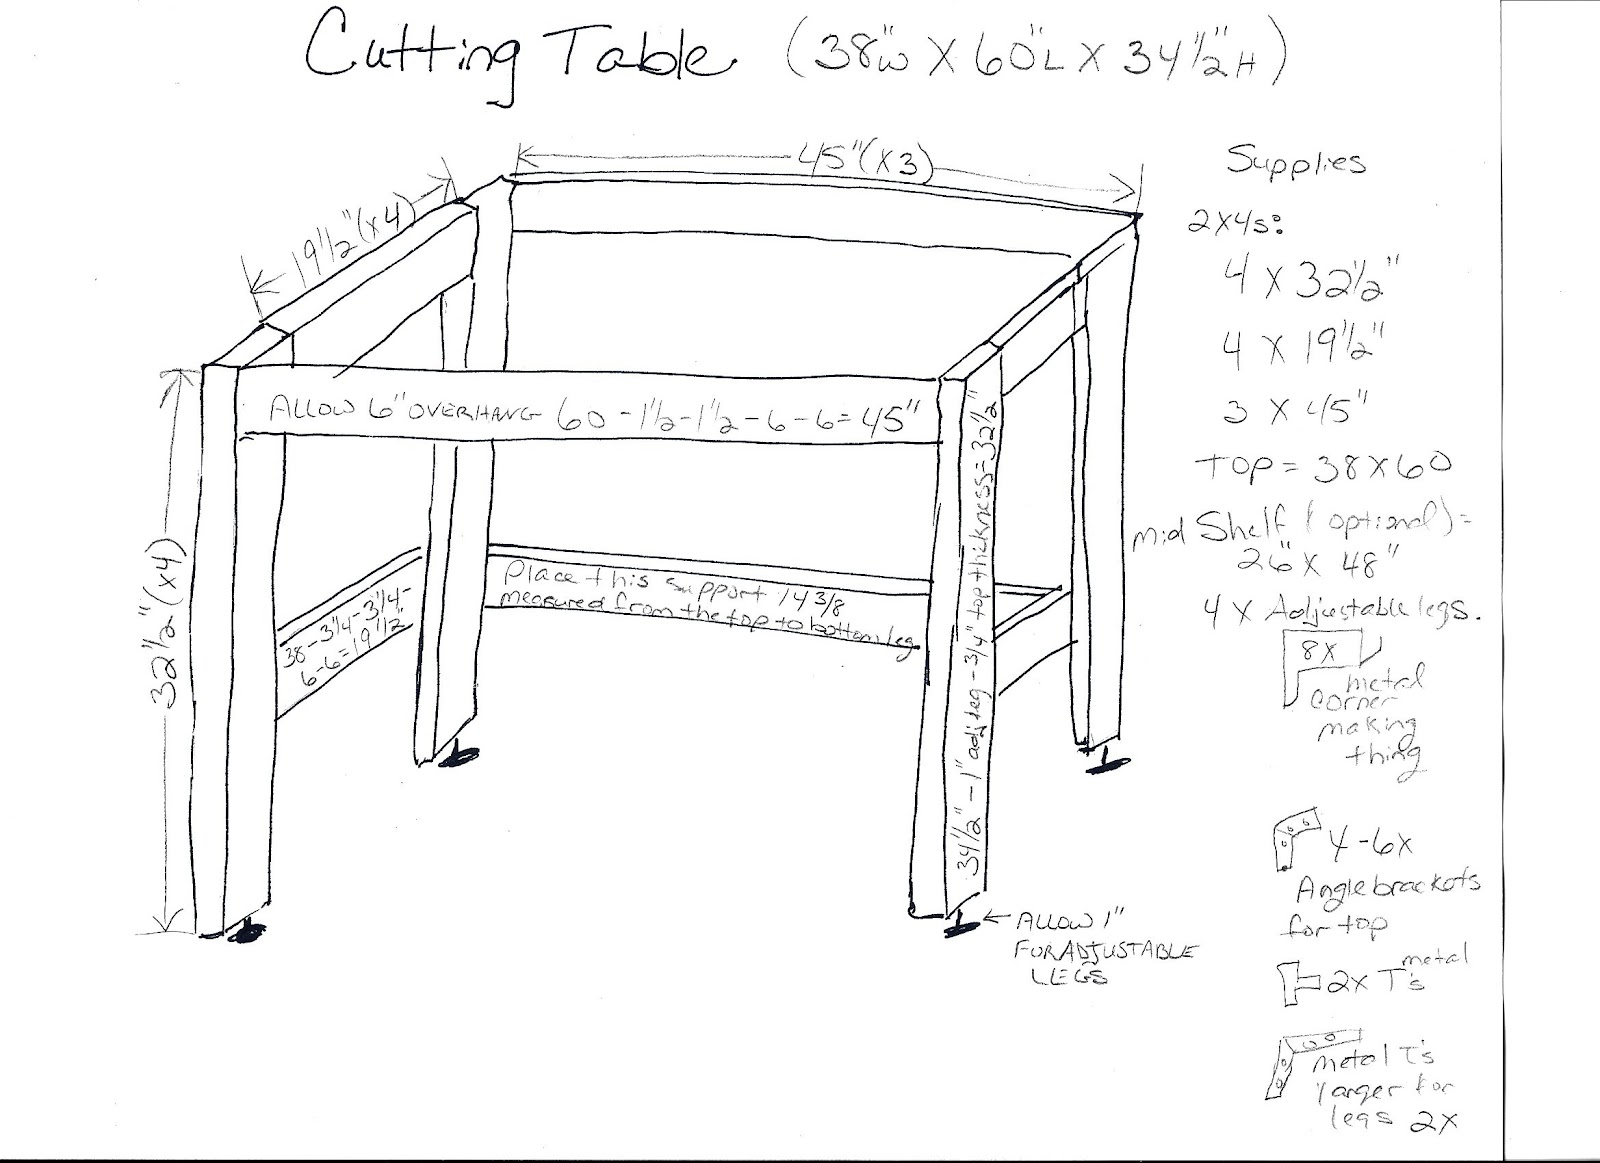 Detroitknitter cutting table design stage for Table layout design